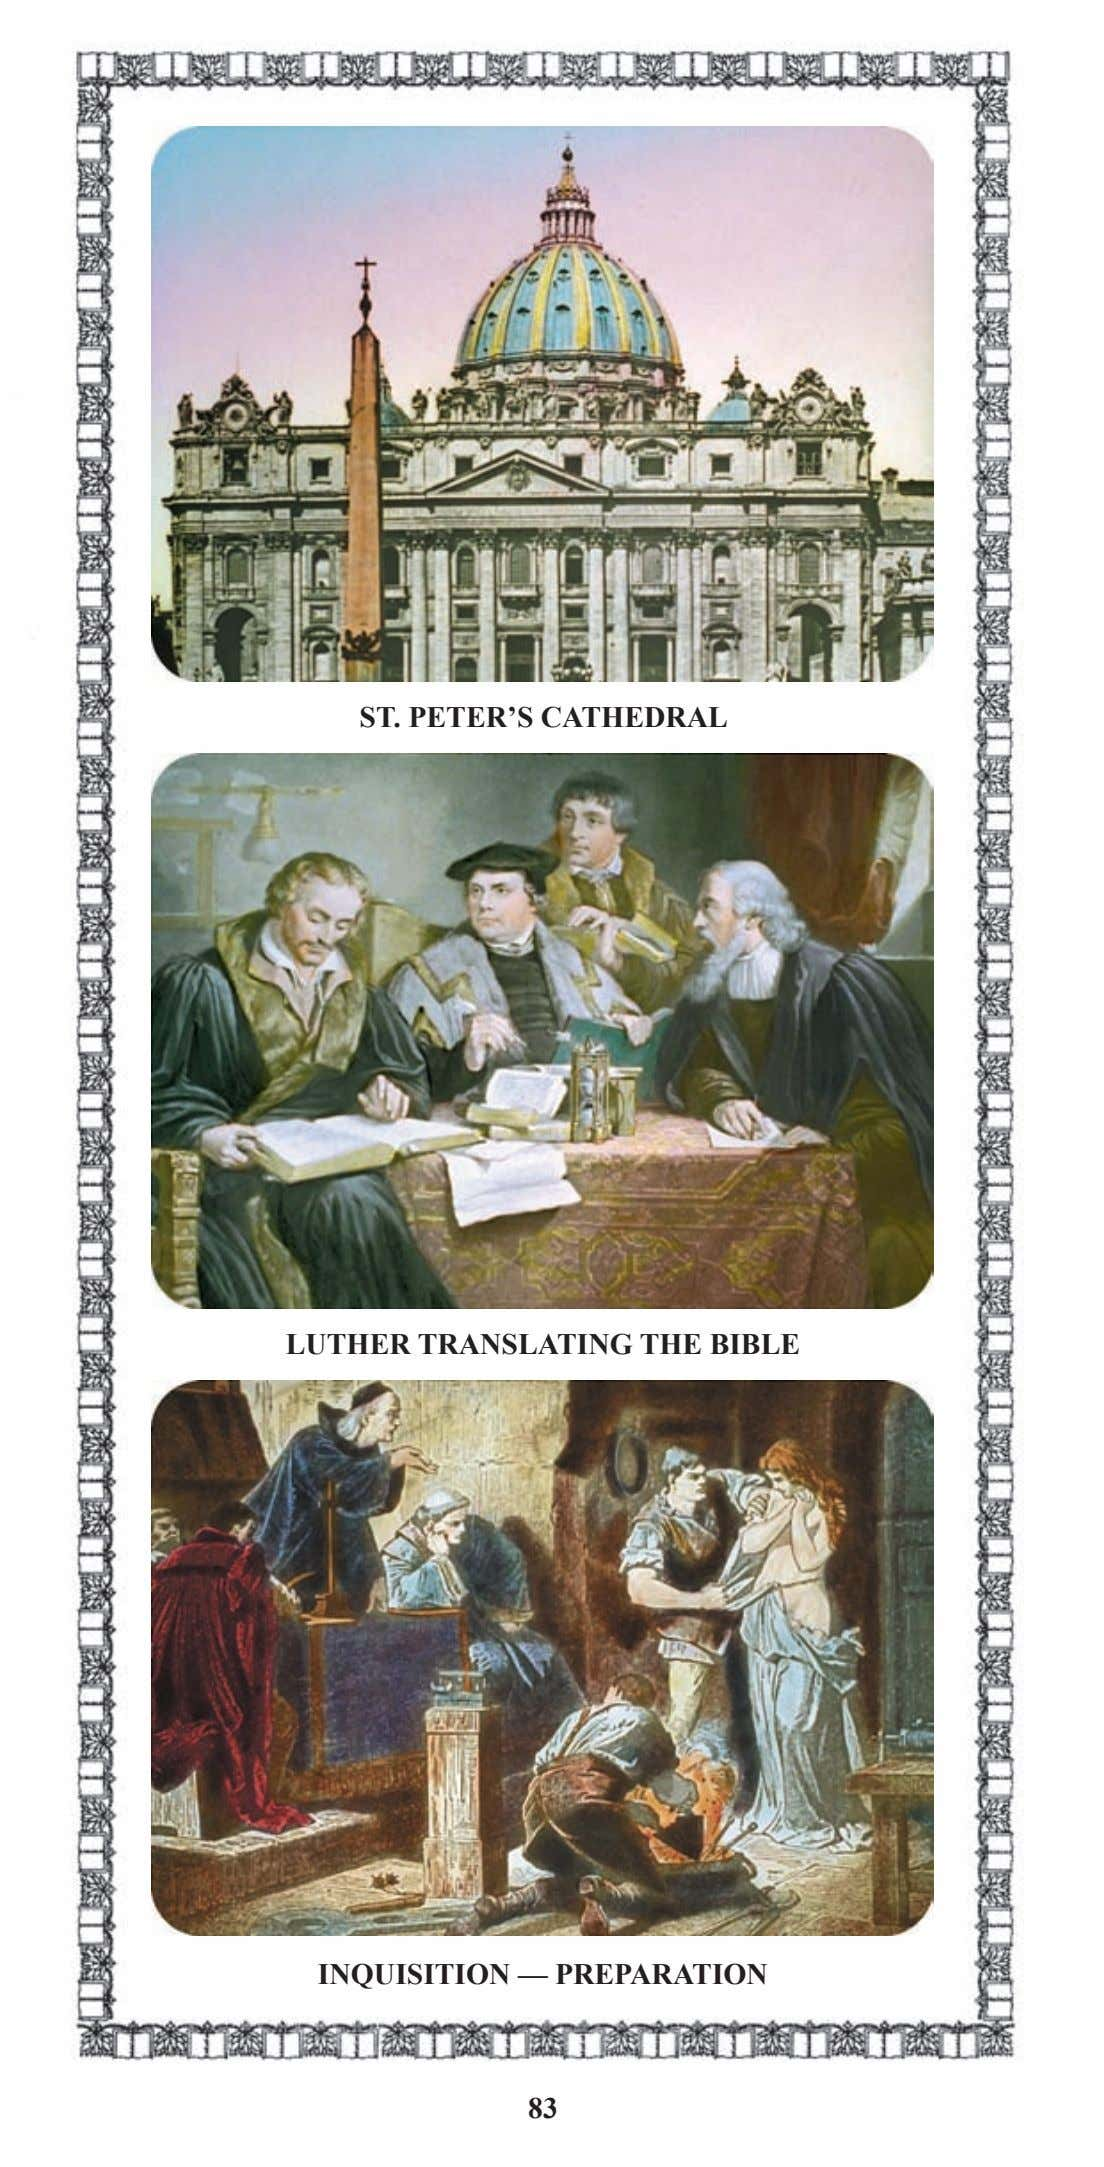 ST. PETER'S CATHEDRAL LUTHER TRANSLATING THE BIBLE INQUISITION — PREPARATION 83